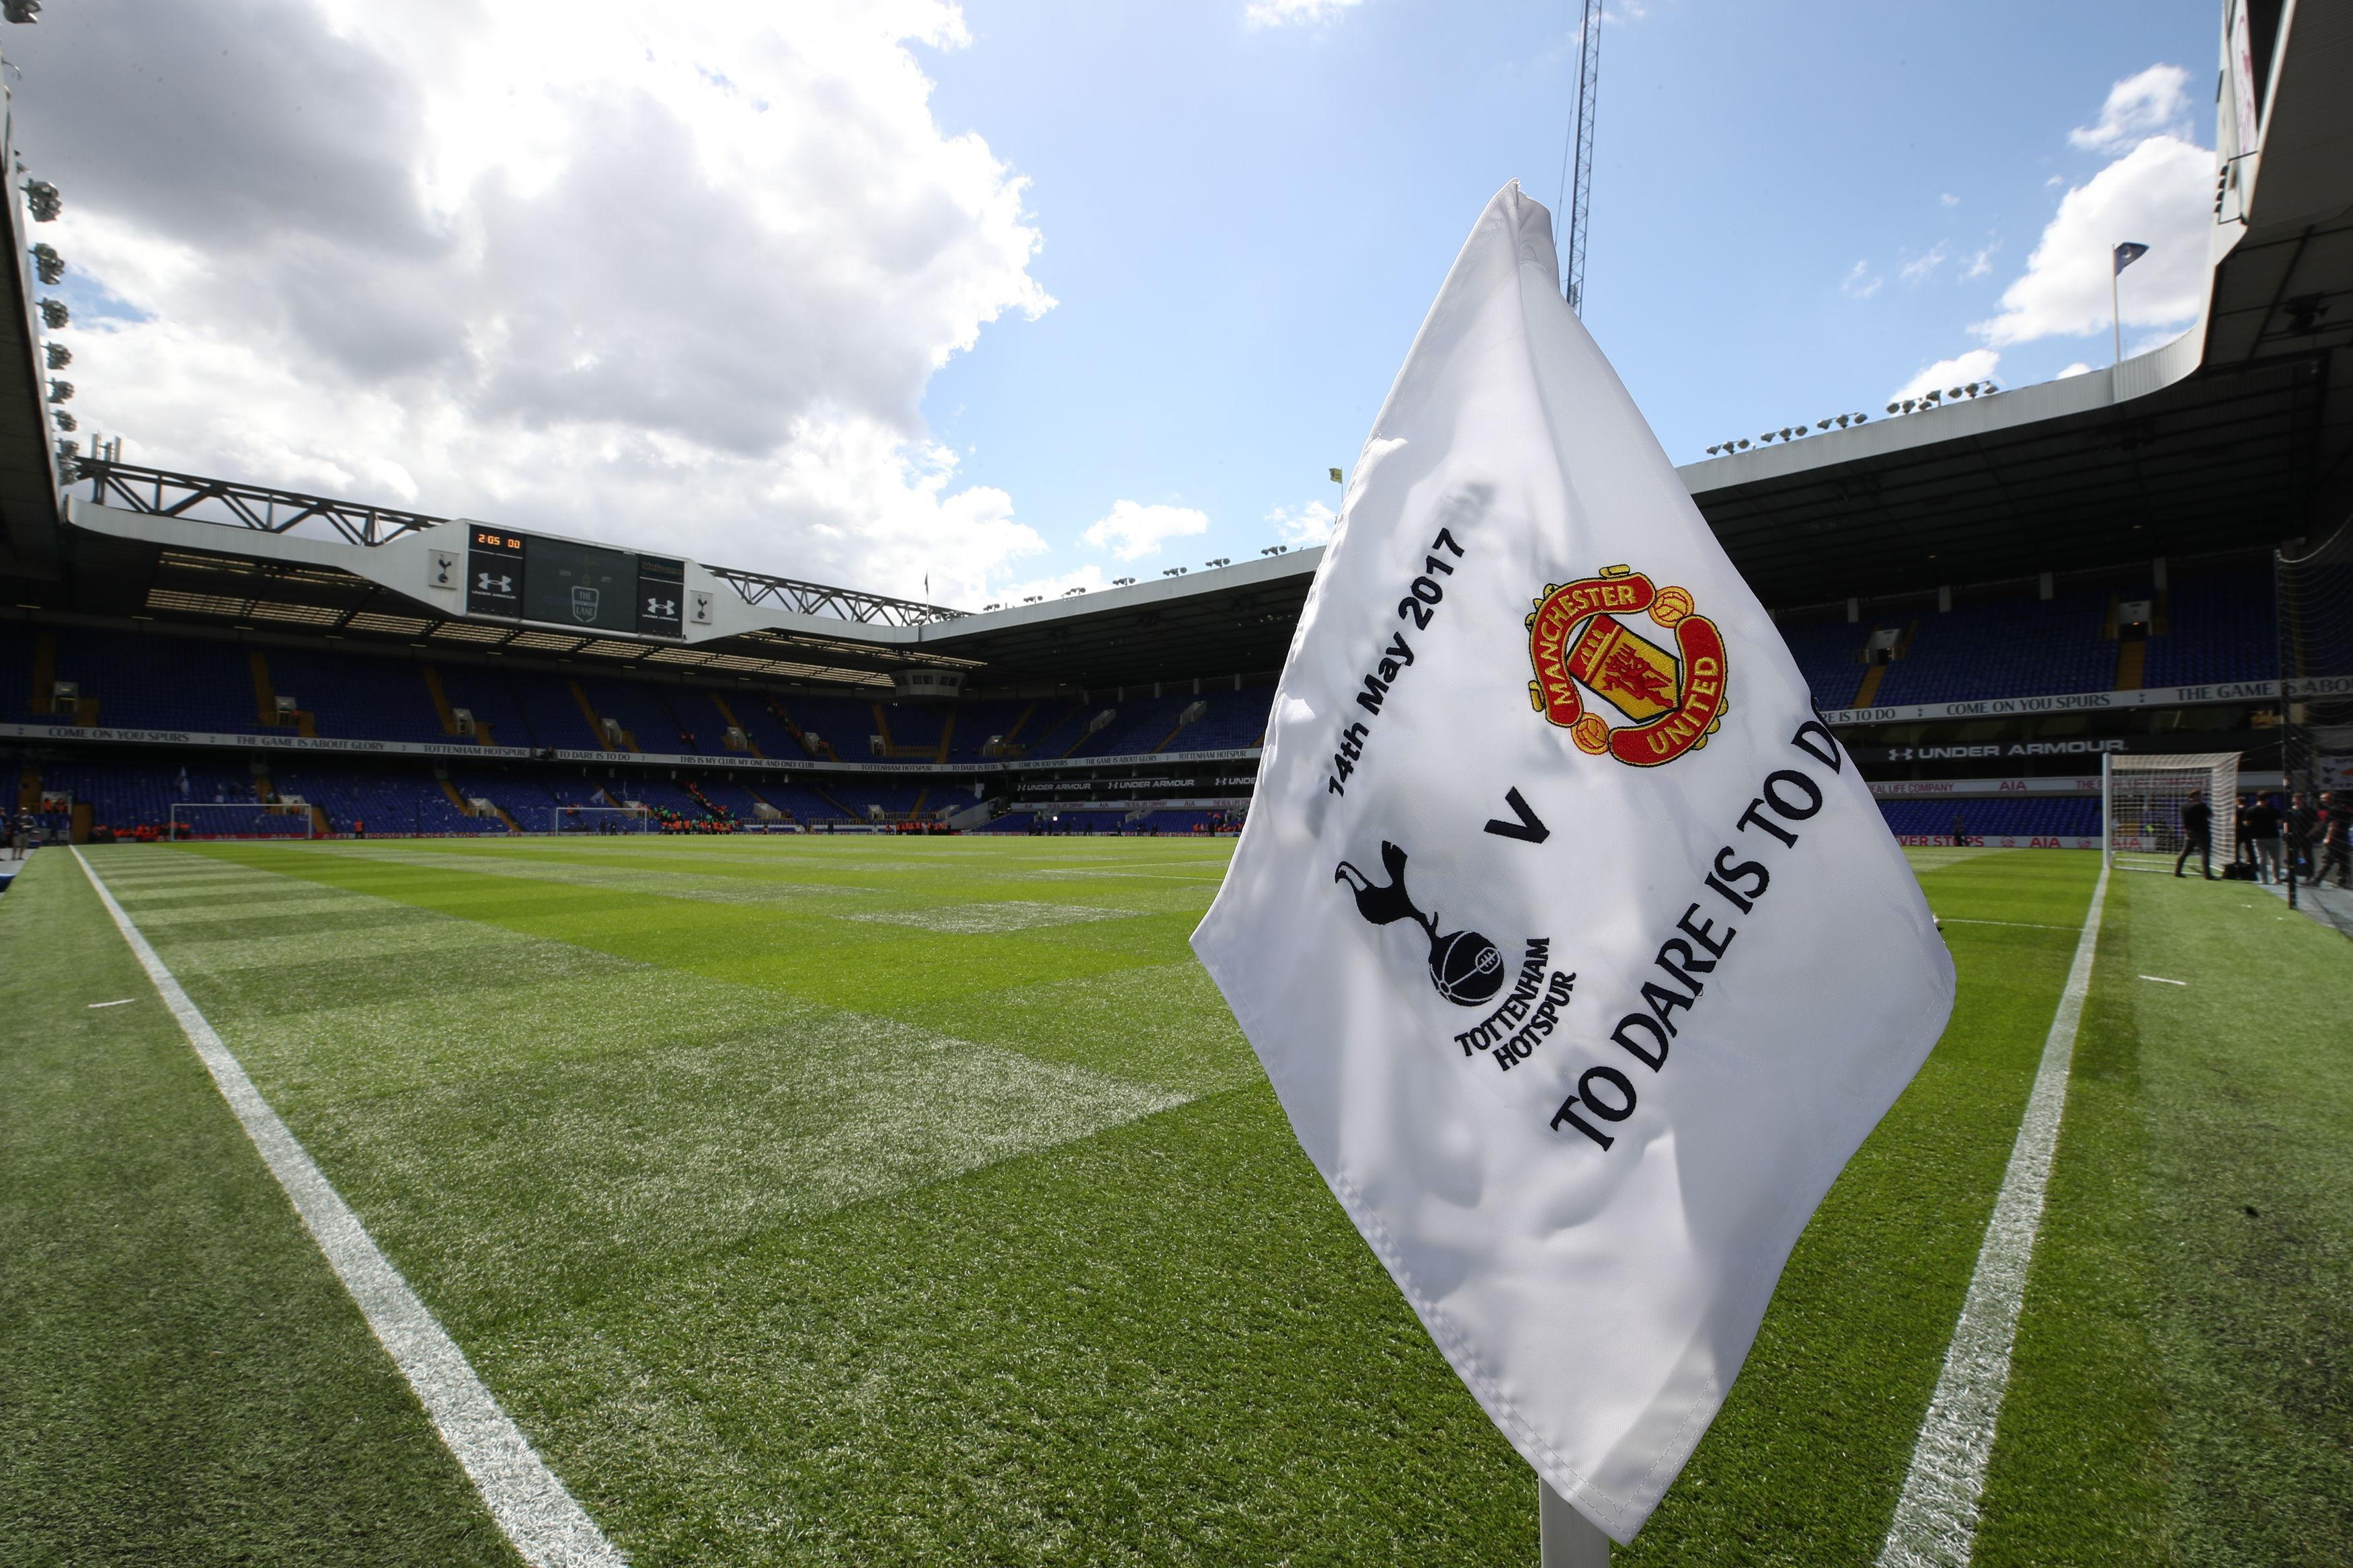 Tottenham bid an emotional farewell to White Hart Lane against Manchester United earlier this year